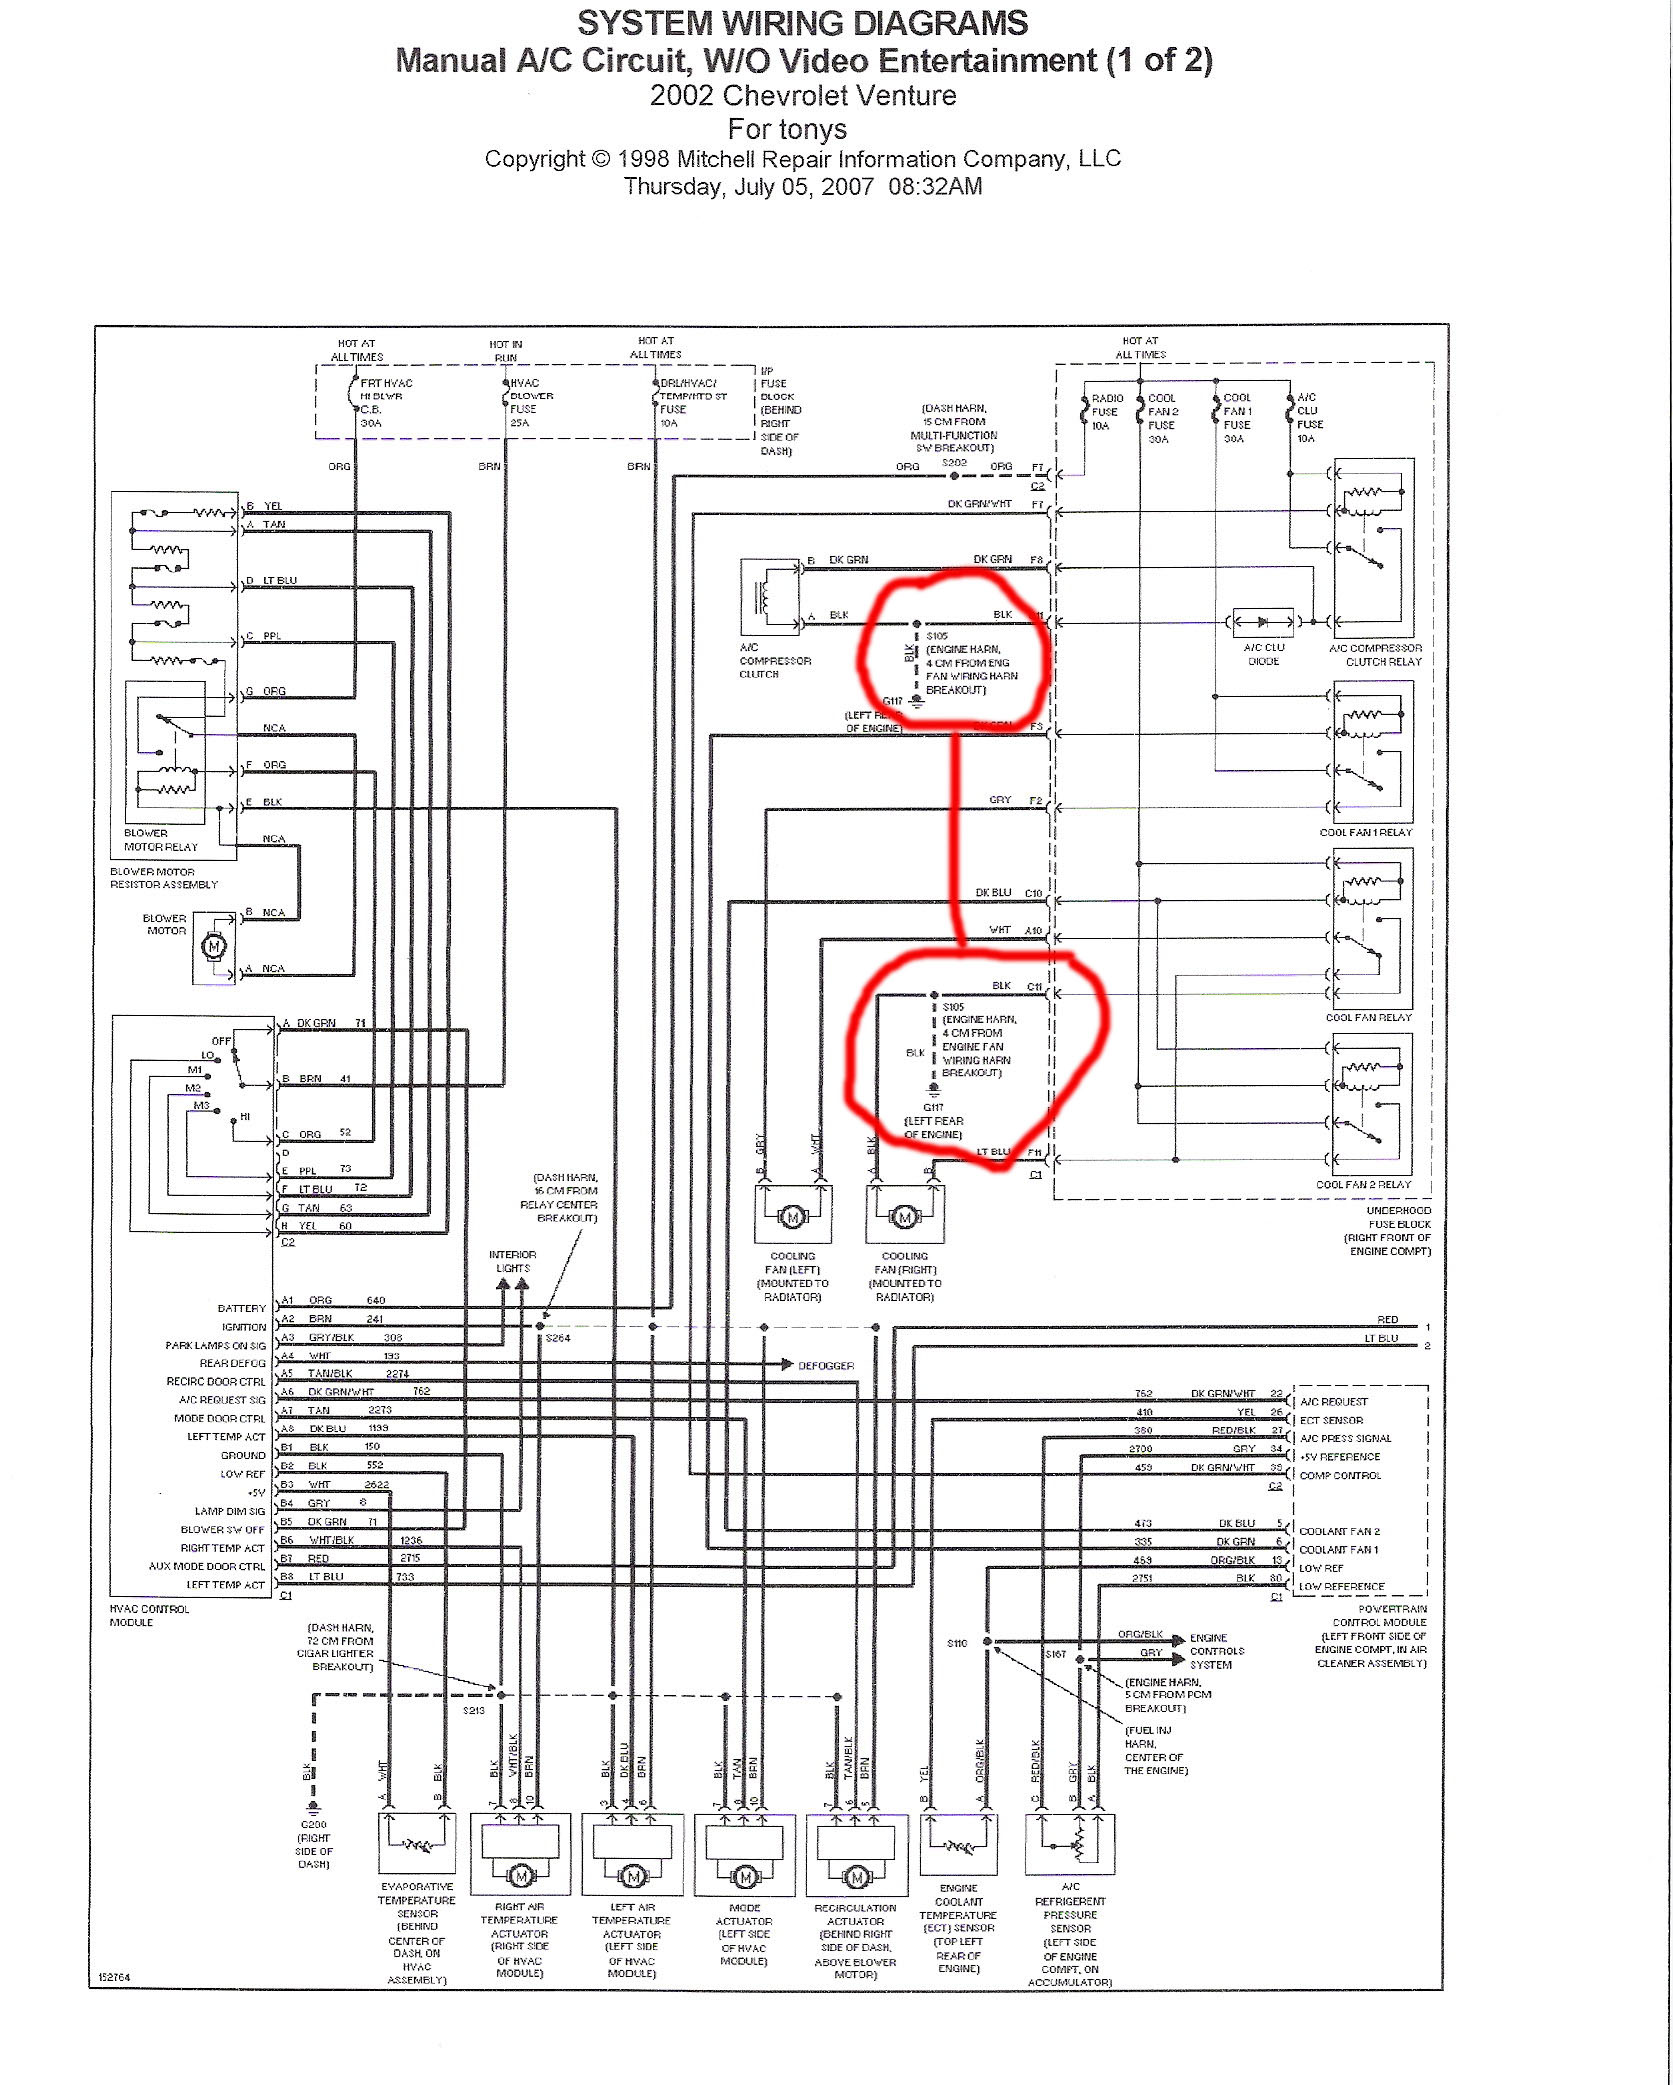 Cable Termination Diagram